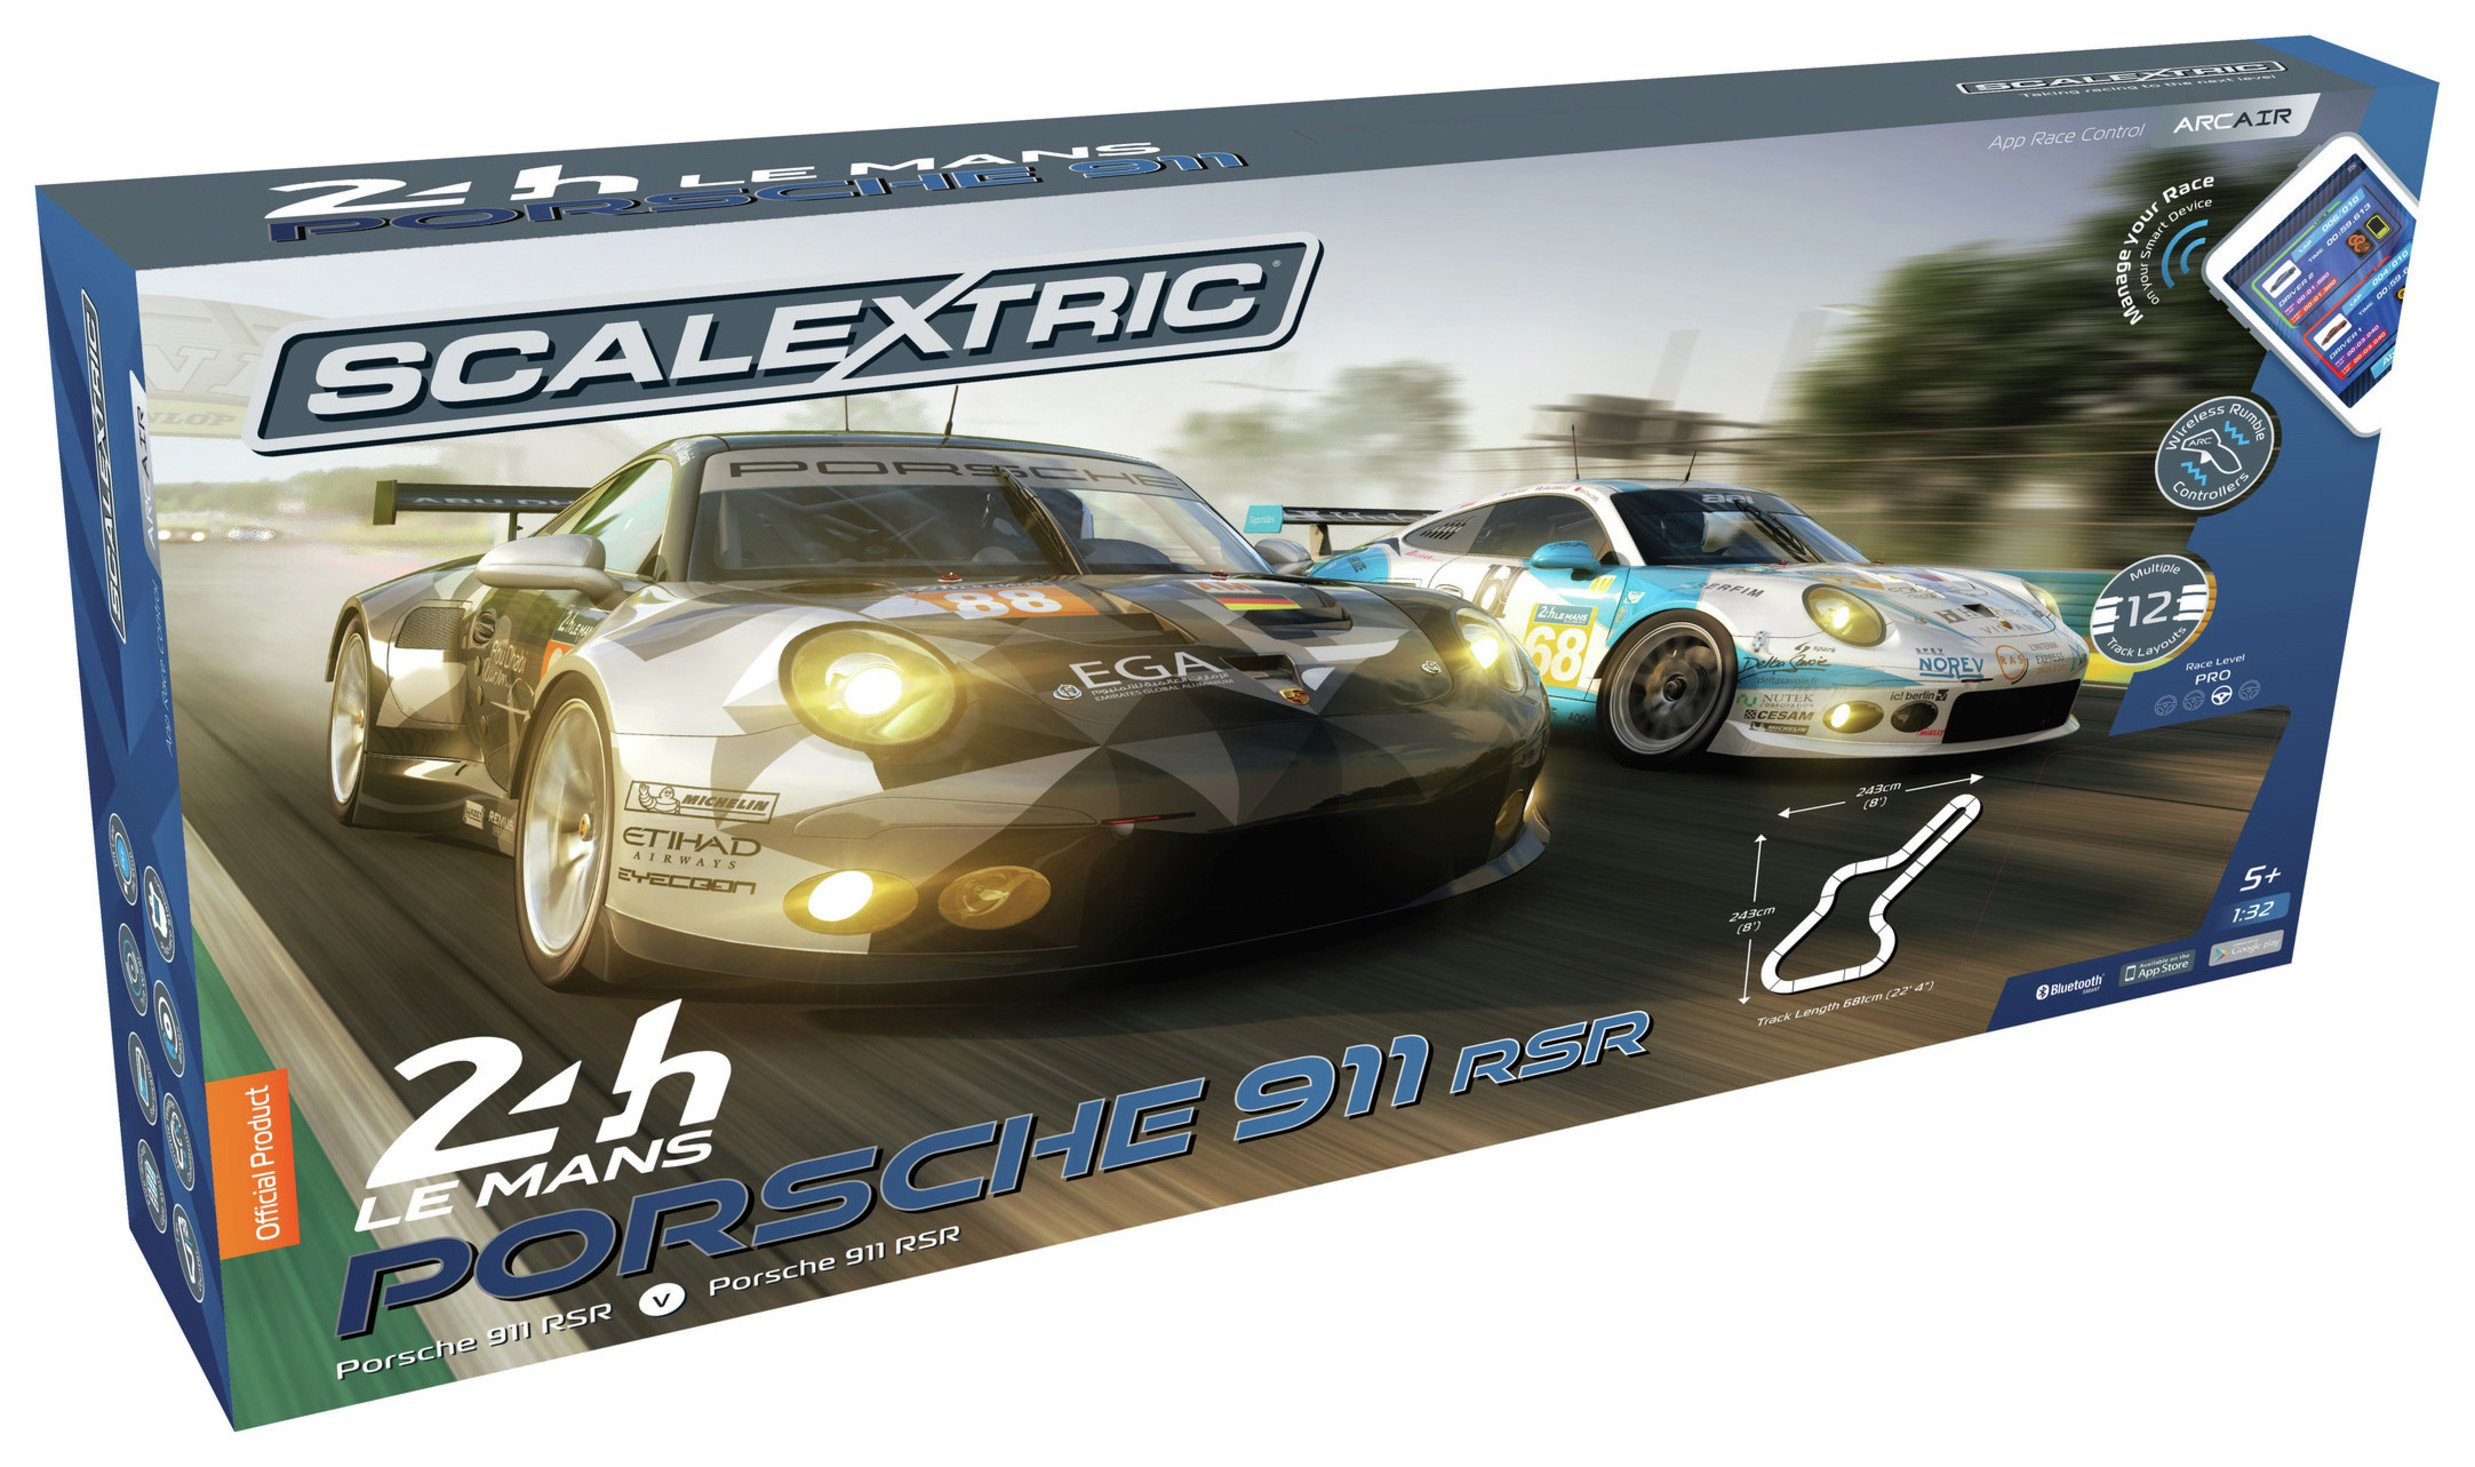 Scalextric Arc Air Le Mans Racing Track Set